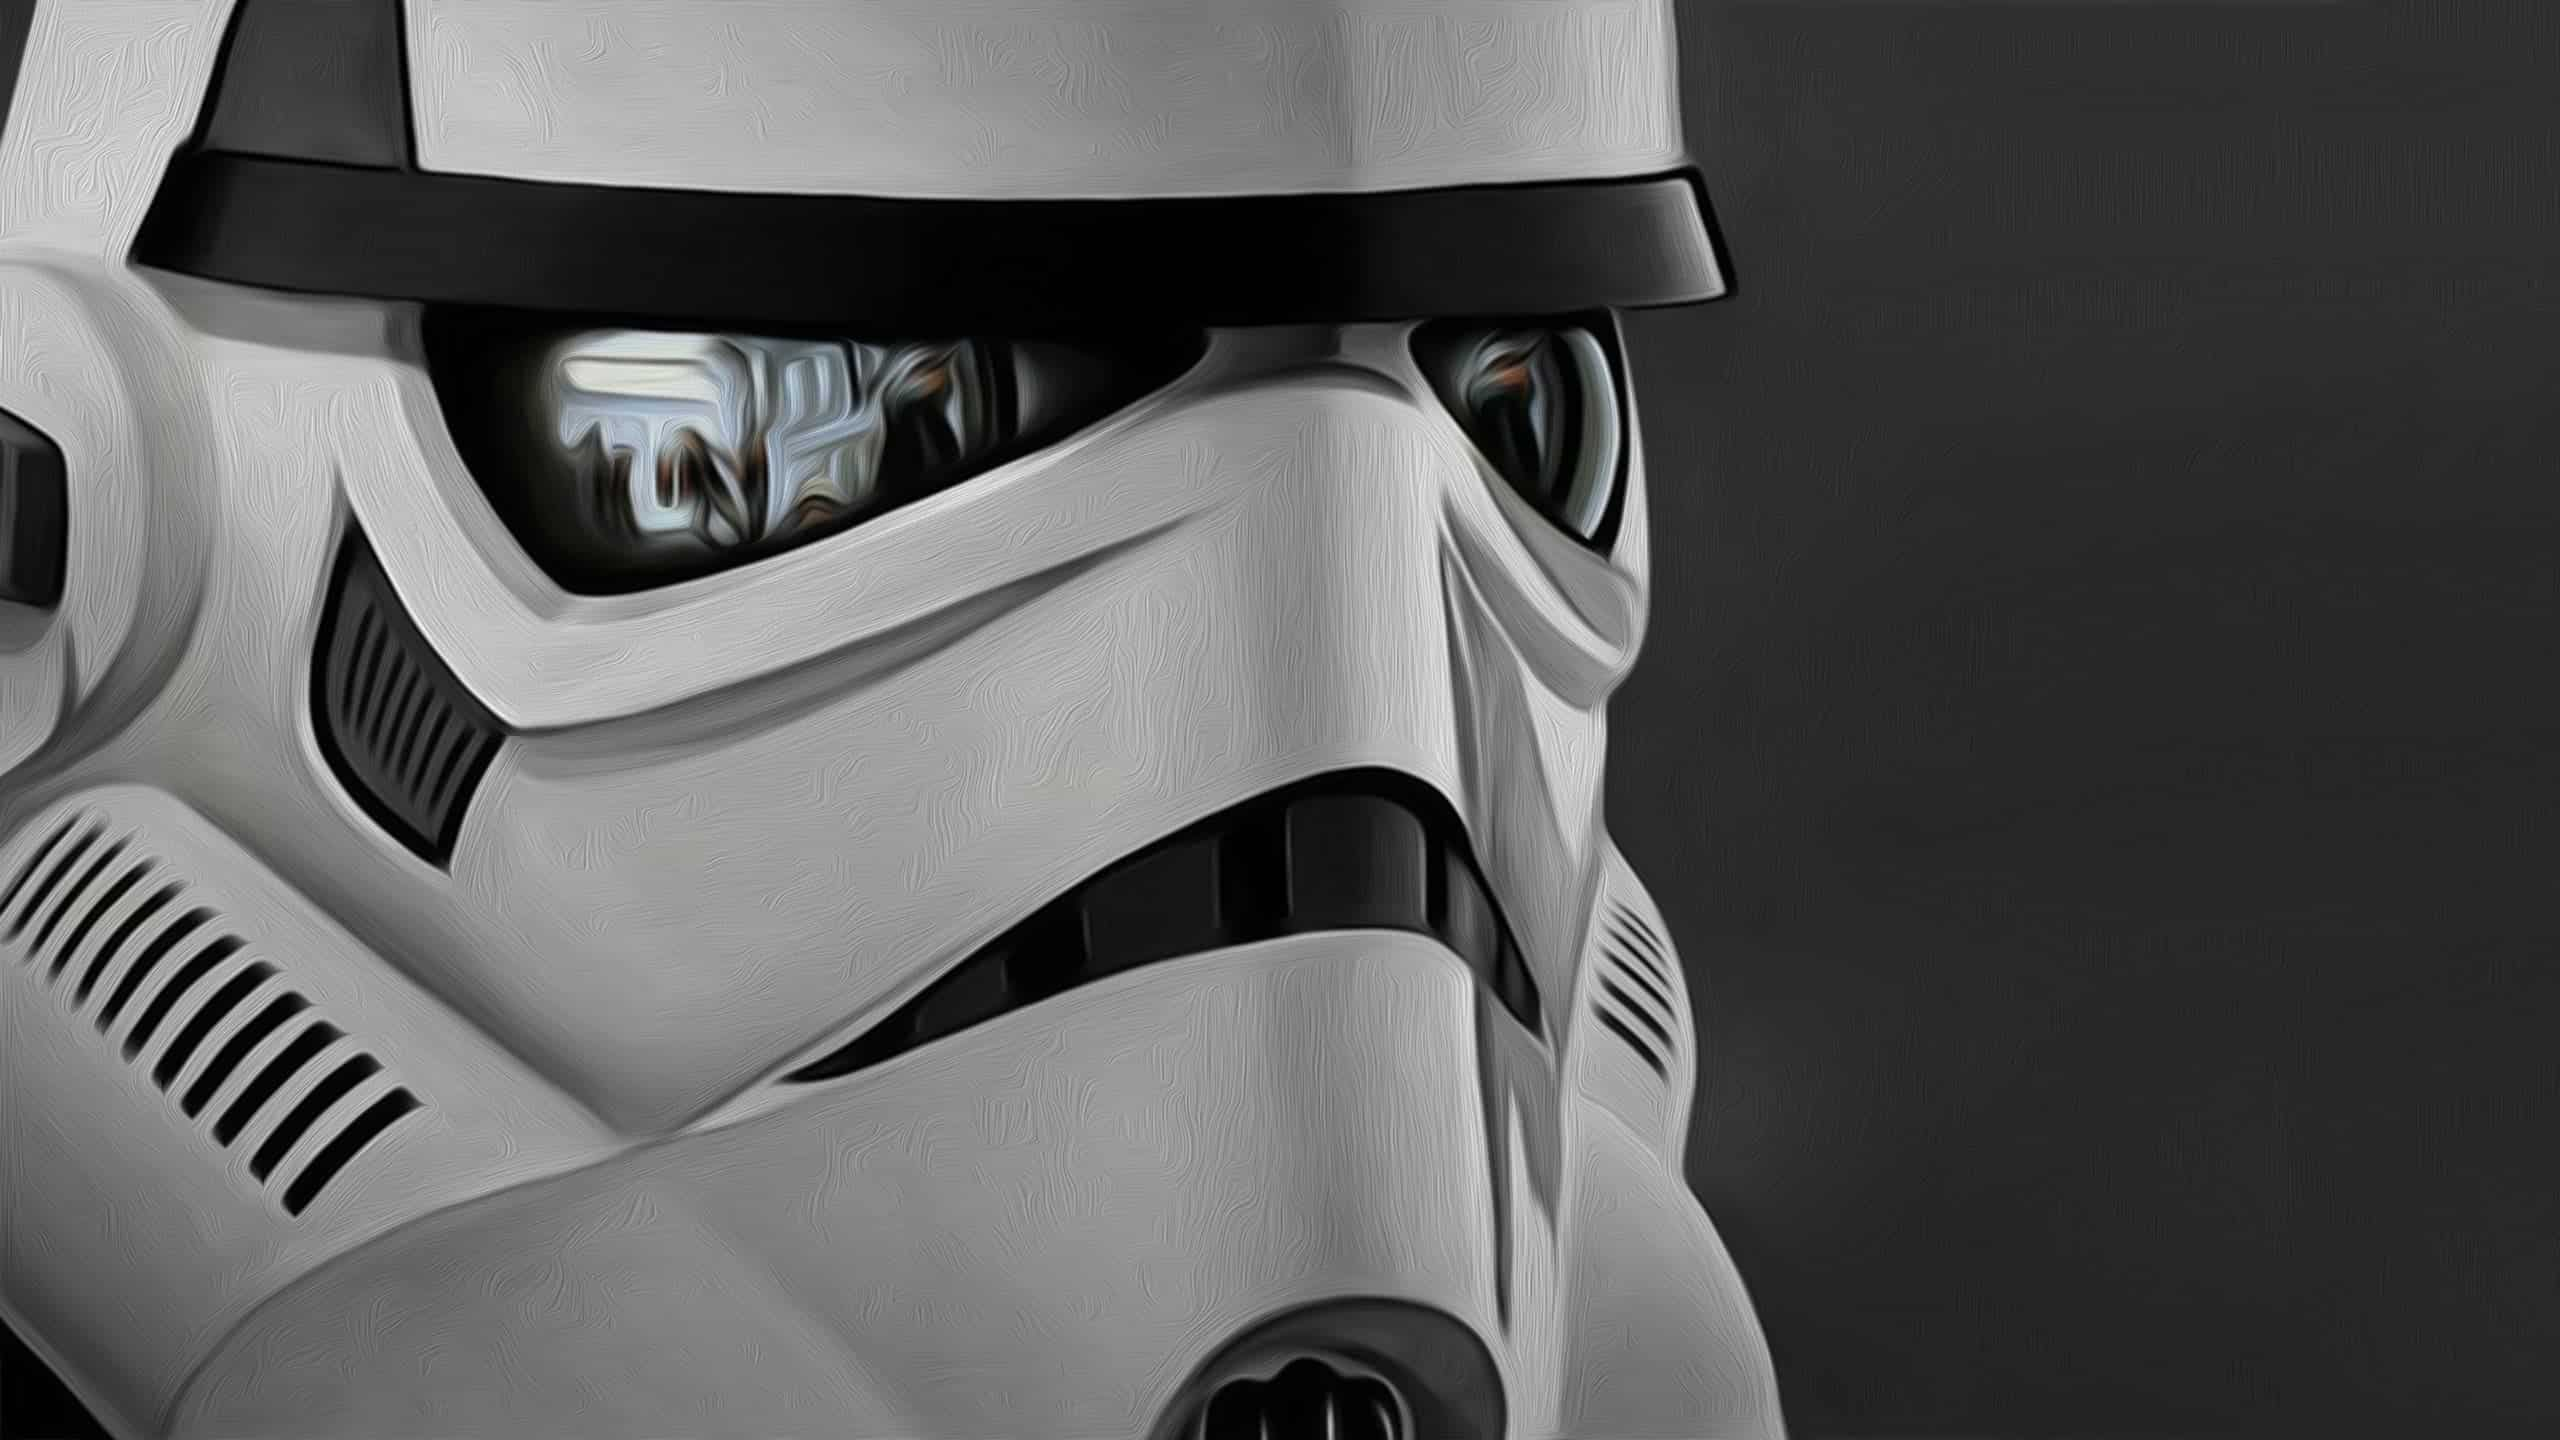 star wars clone trooper wqhd 1440p wallpaper